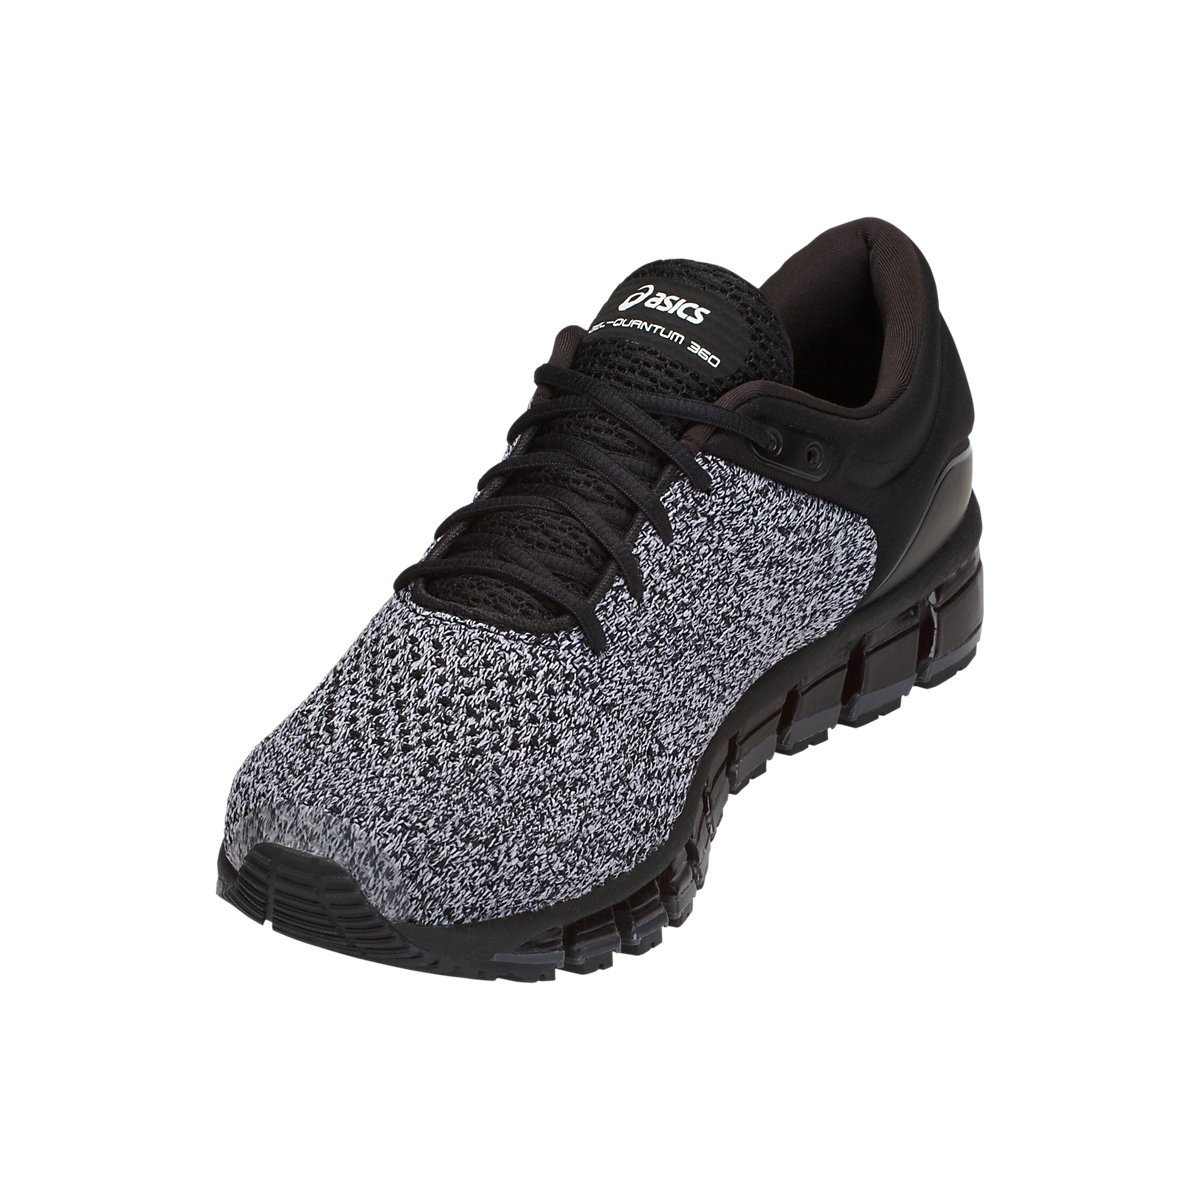 new style 88a2c d4550 ... spain asics gel quantum 360 knit 2 t840n9001 amazon.de schuhe  handtaschen 7cb63 7cd1a